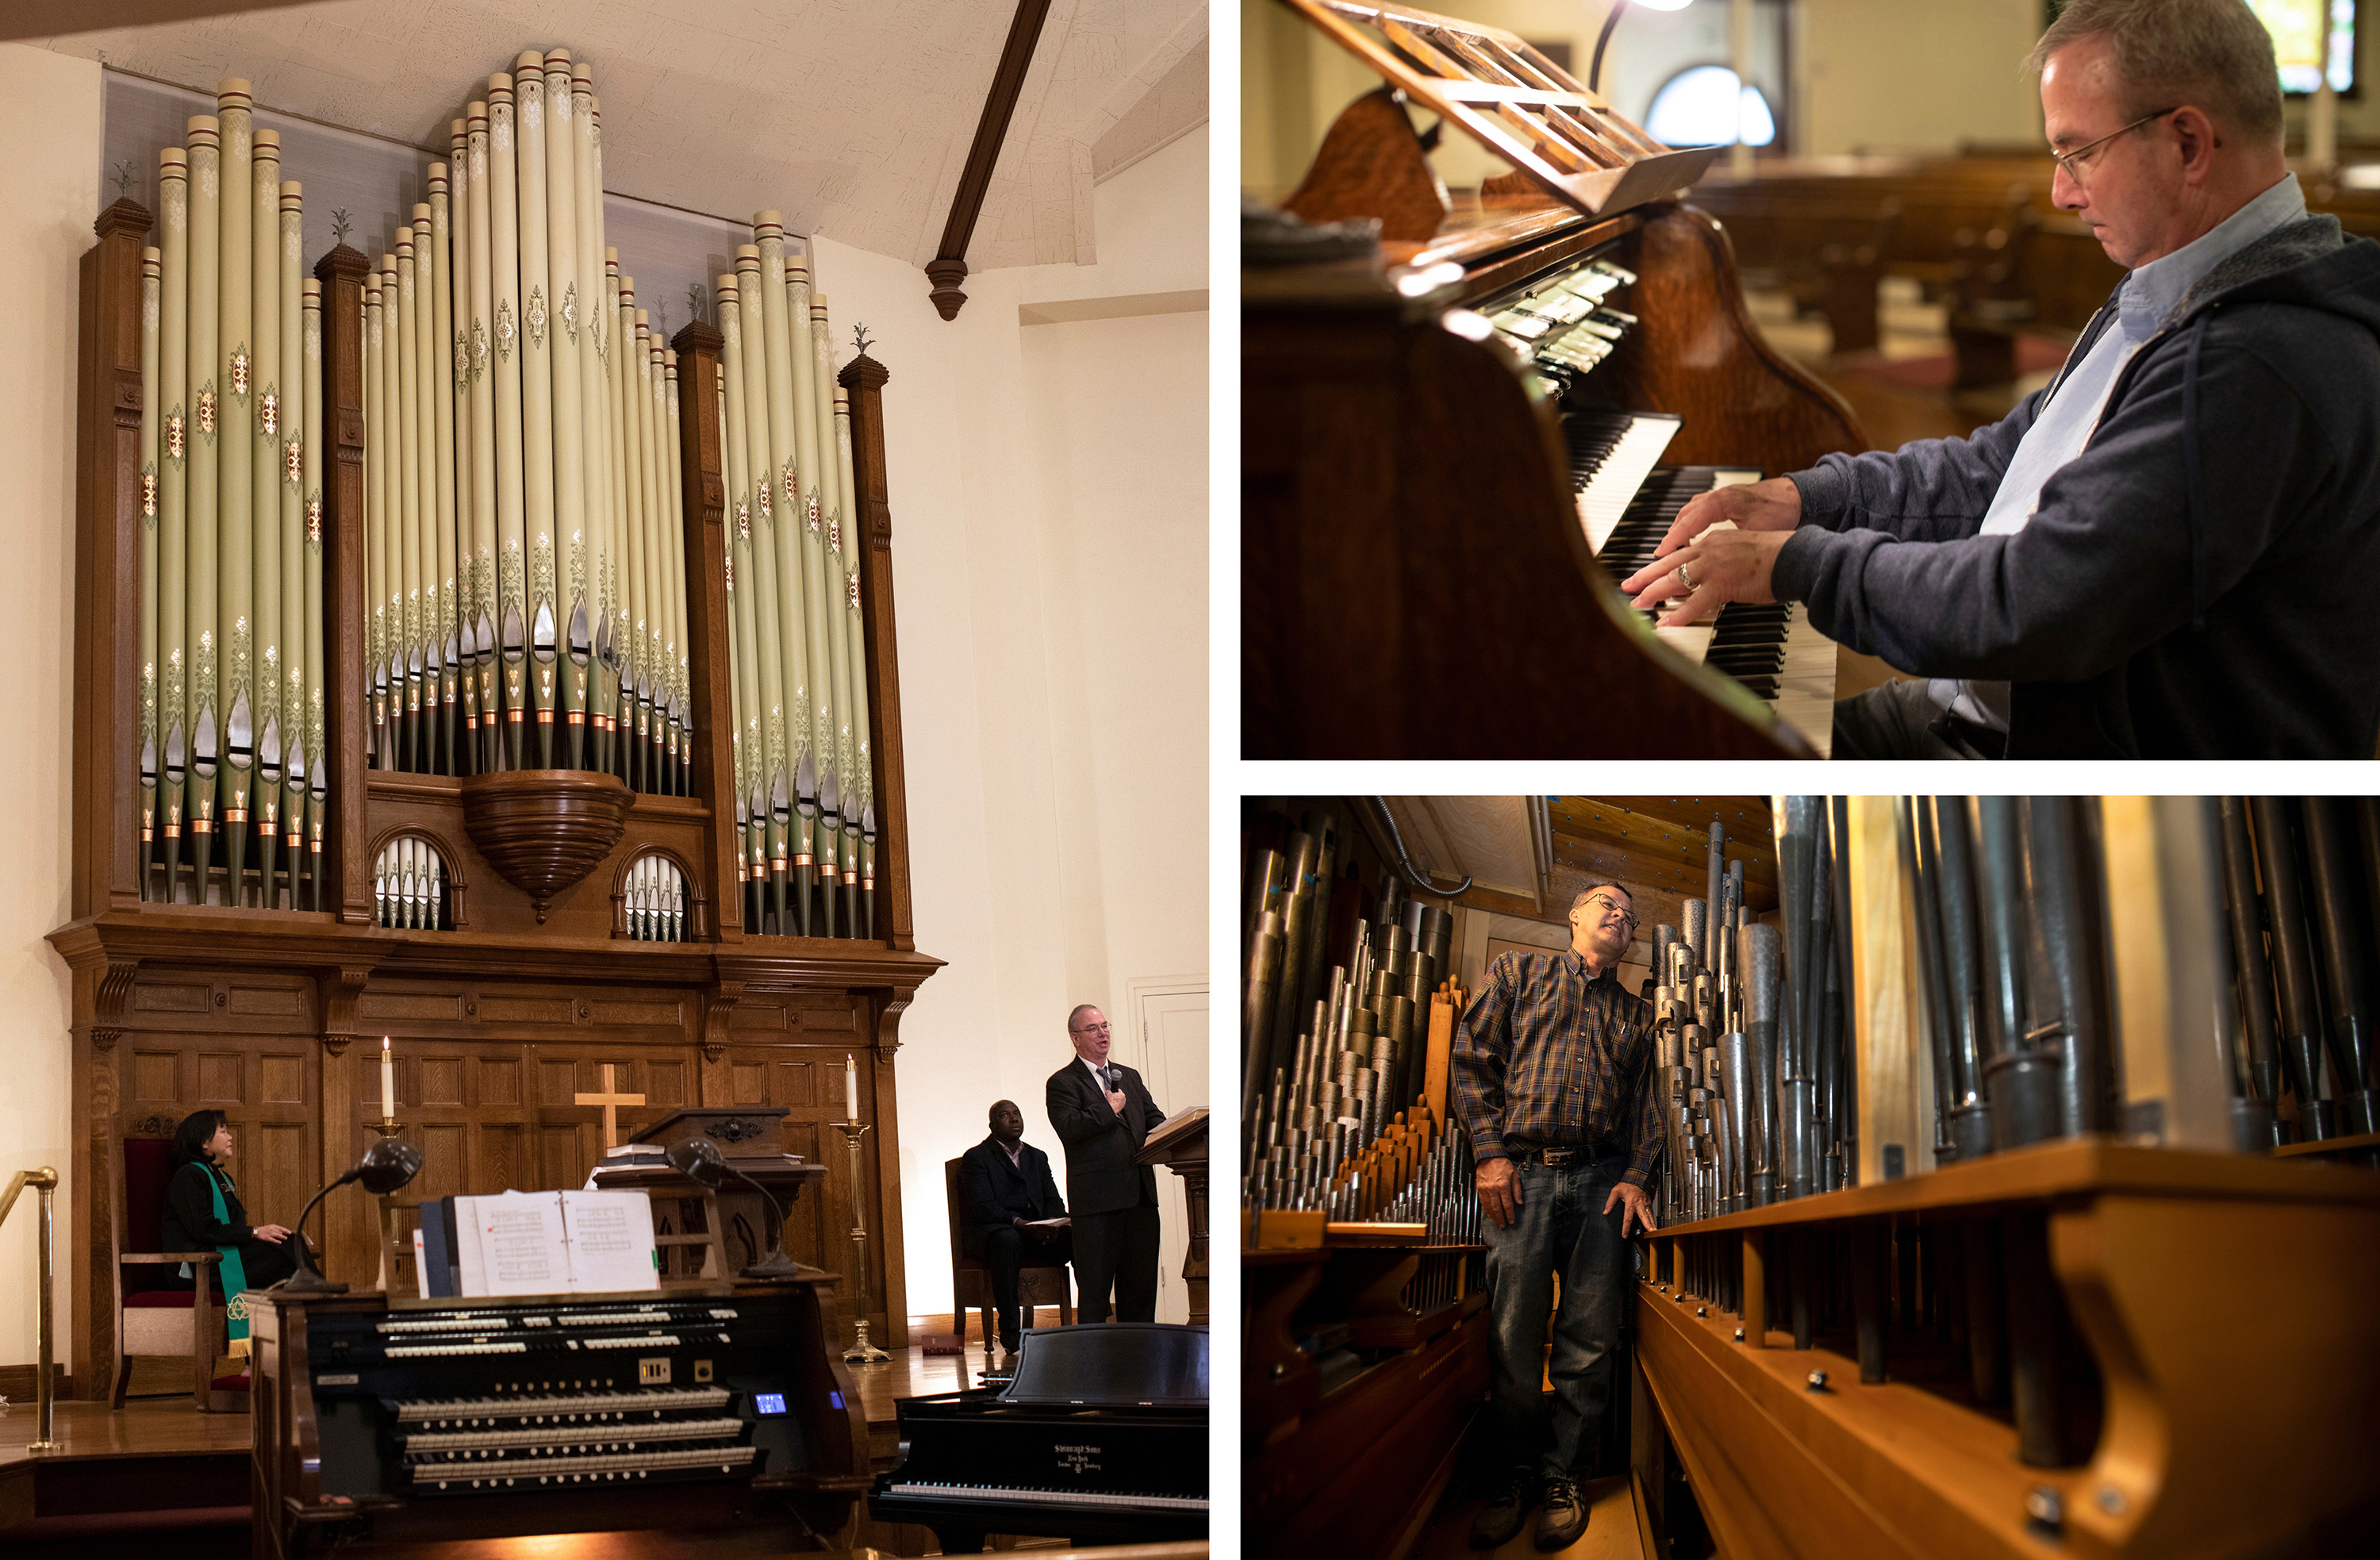 "(Clockwise from left) Music director, Scott Mills, speaks from altar in front of the renovated Bigelow Organ Opus 38, a 43-rank pipe organ. Mills enjoys playing the organ on a Saturday. Historian, Mike Green, gives a ""behind the scene"" glimpse of the range of pipes not seen sanctuary."